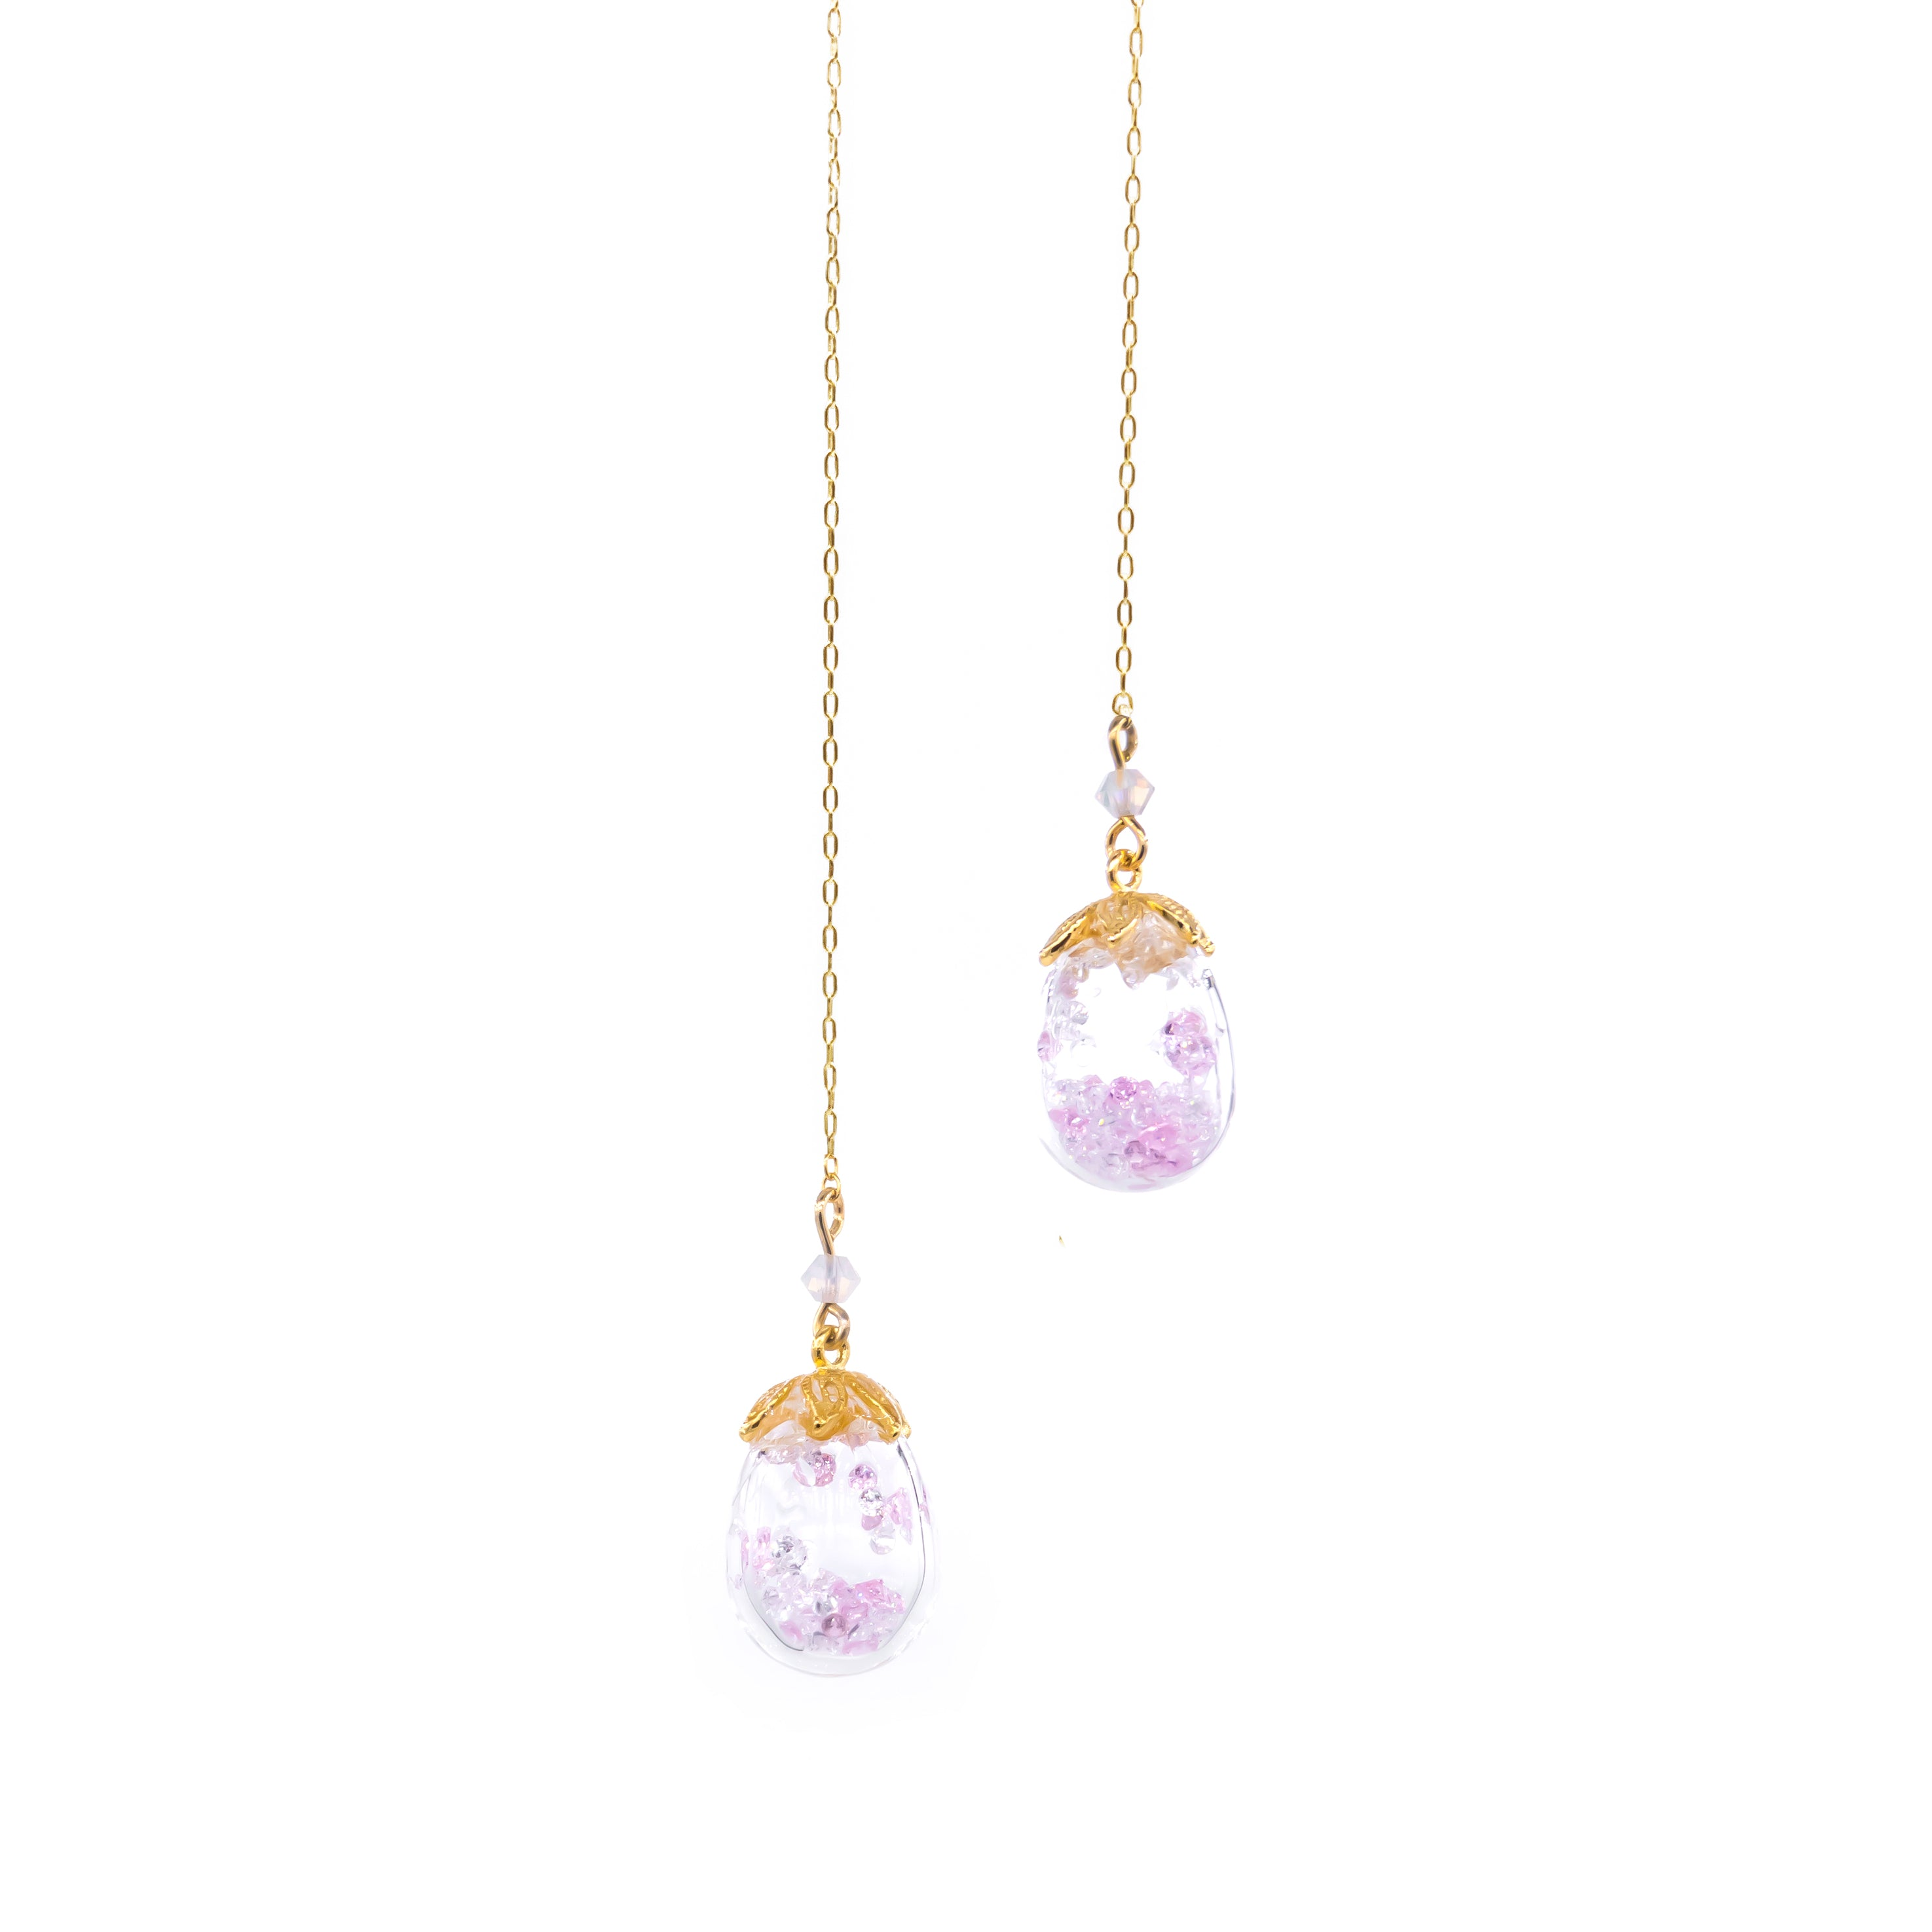 Snowy Aurora Bouquet 2-way 14K Gold-plated 925 Silver Necklace (with transformable POM POM choker)